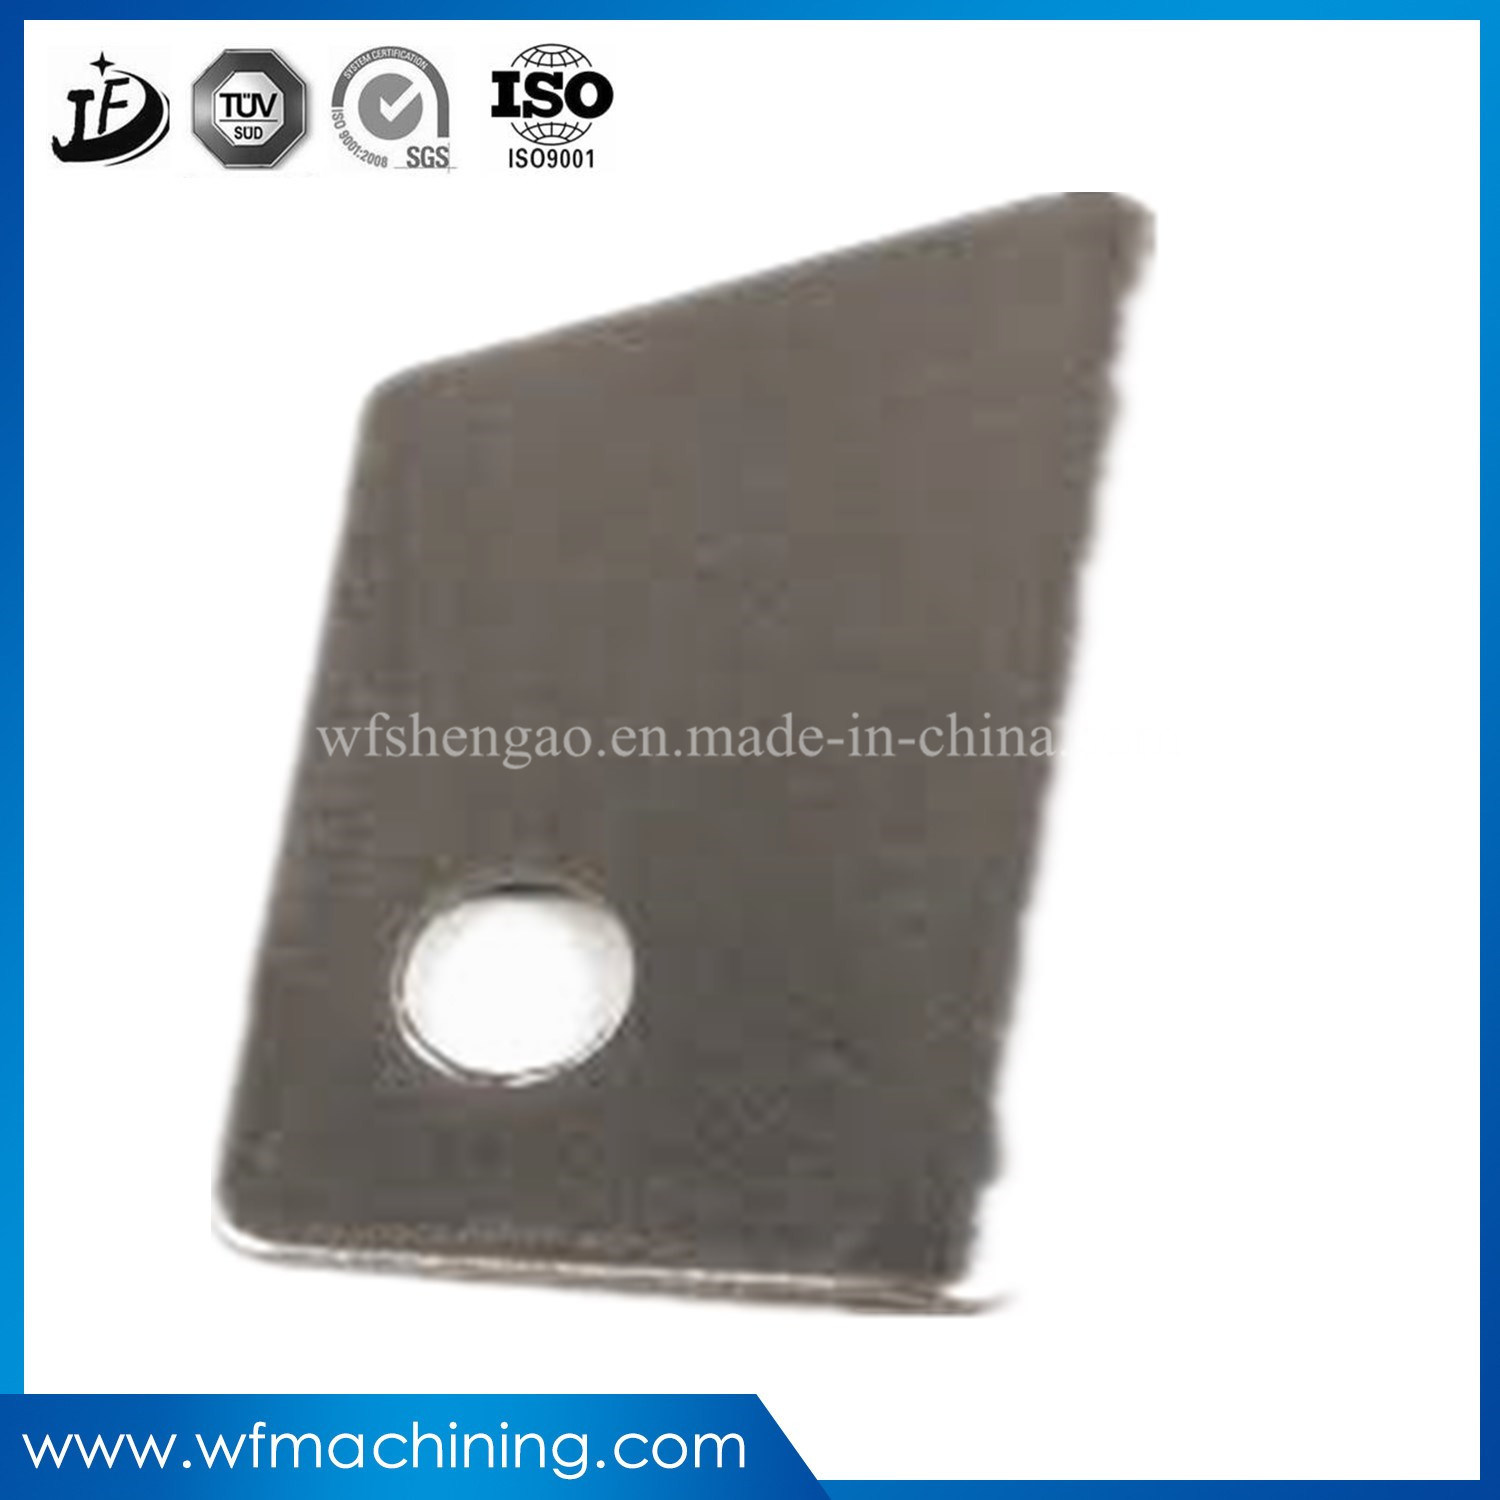 OEM Hot Stamping Precision Metal Stamping of Deep Drawing Stamping